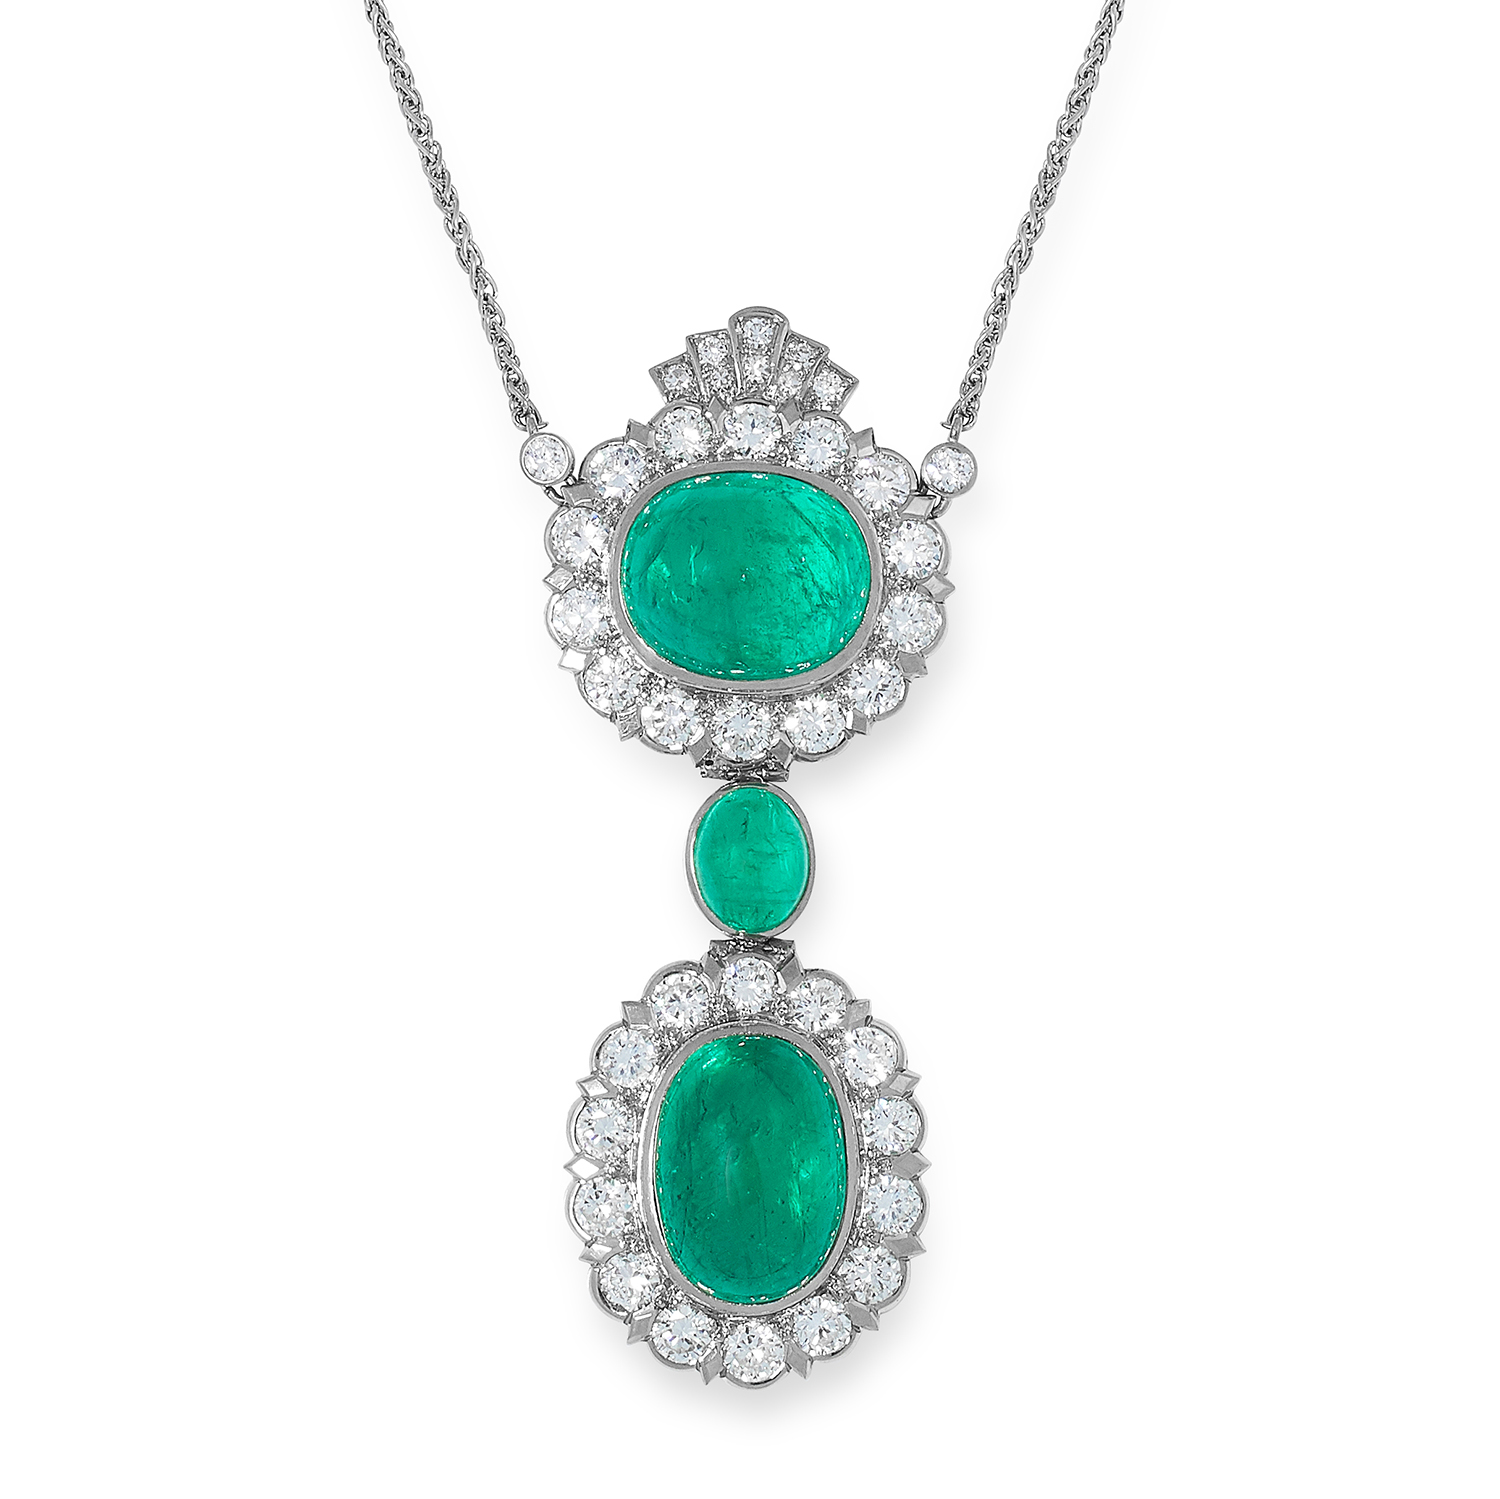 Los 46 - AN EMERALD AND DIAMOND PENDANT NECKLACE set with three cabochon emeralds of 12.39, 11.83 and 2.09